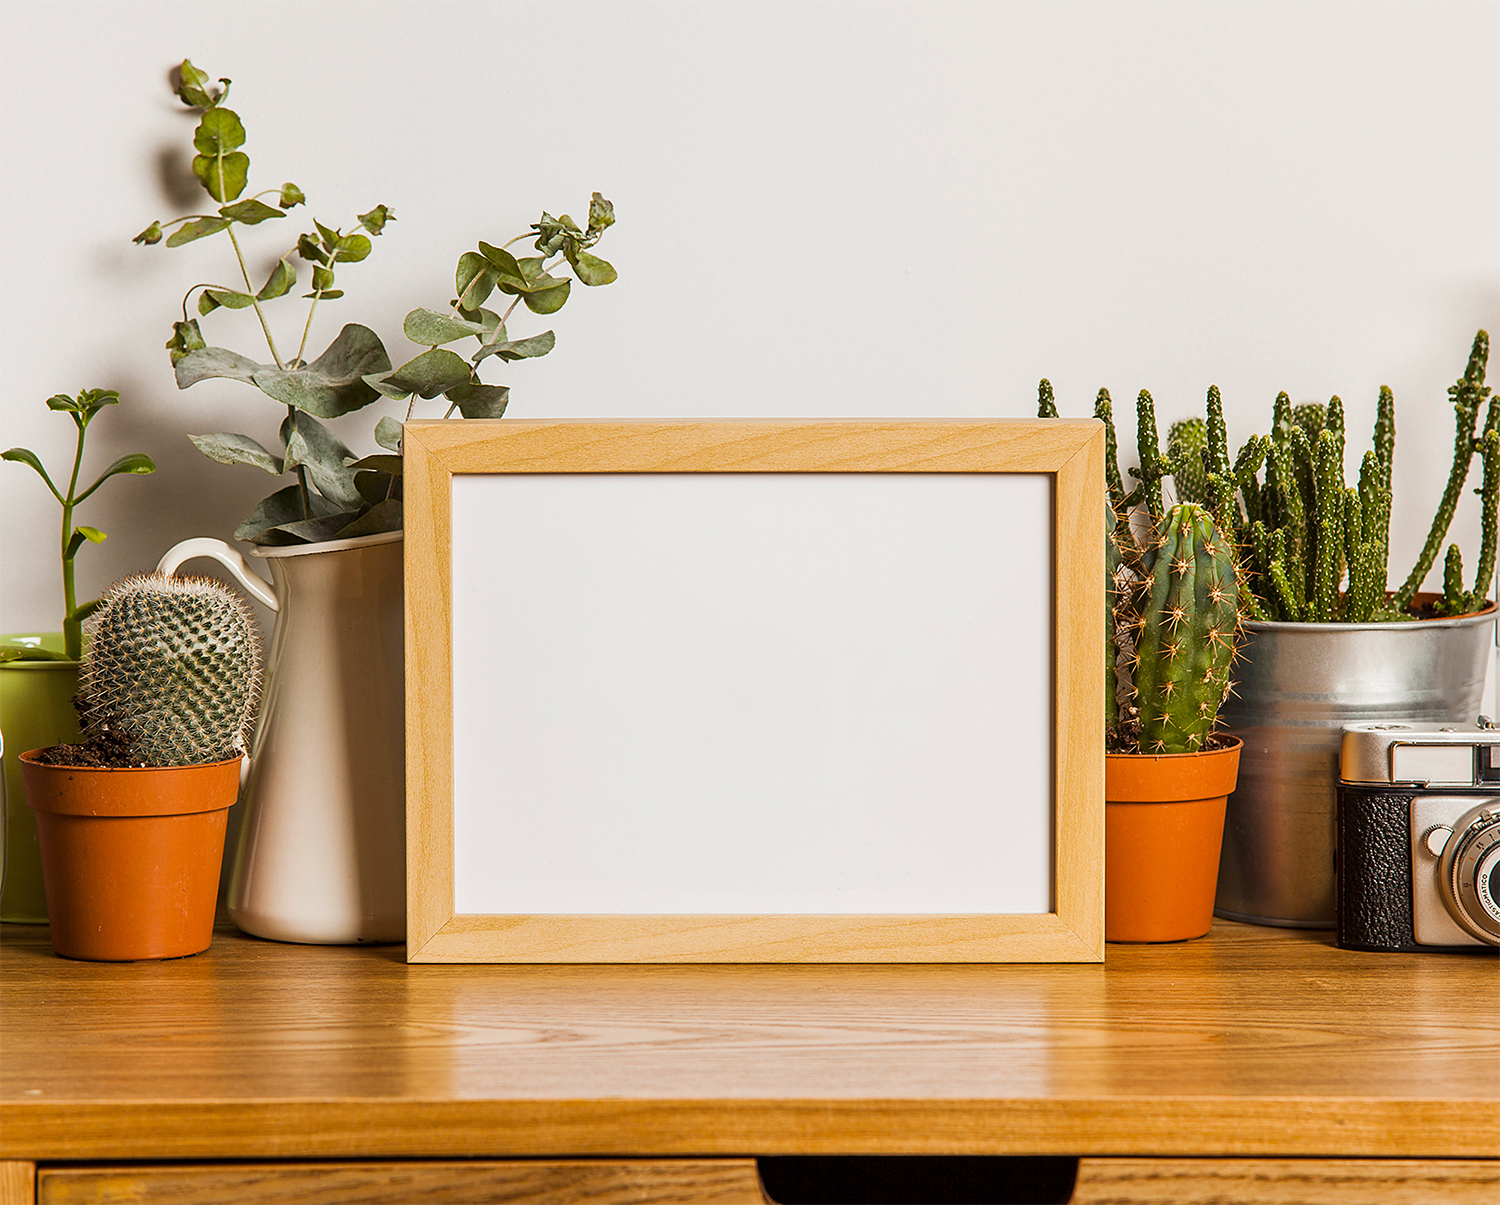 Wood Photo Frame Free Mockup